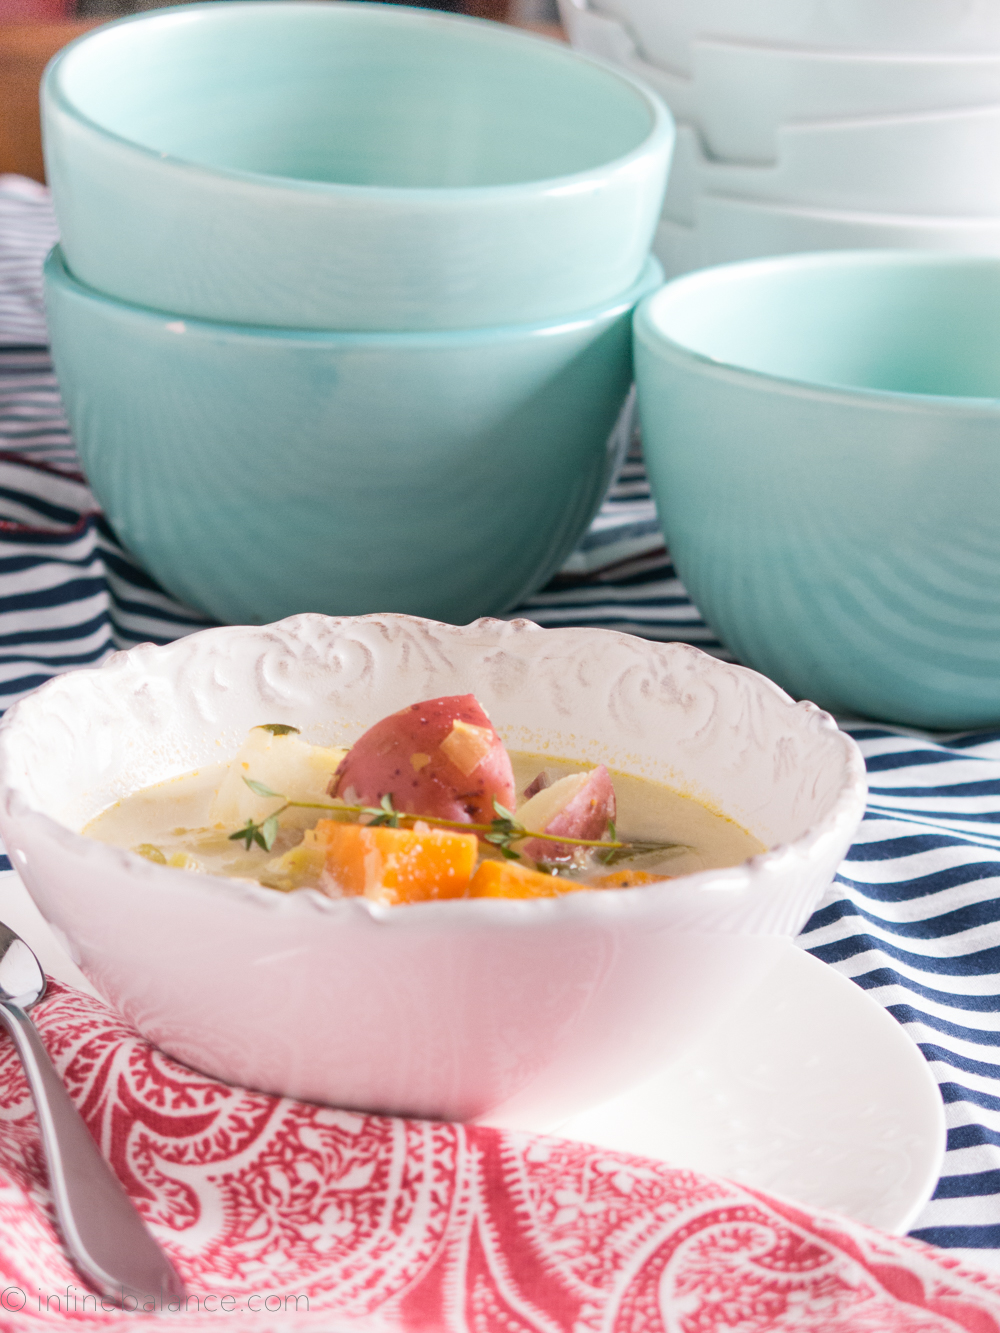 2014 Winter Vegetable Soup | infinebalance.com  #recipe